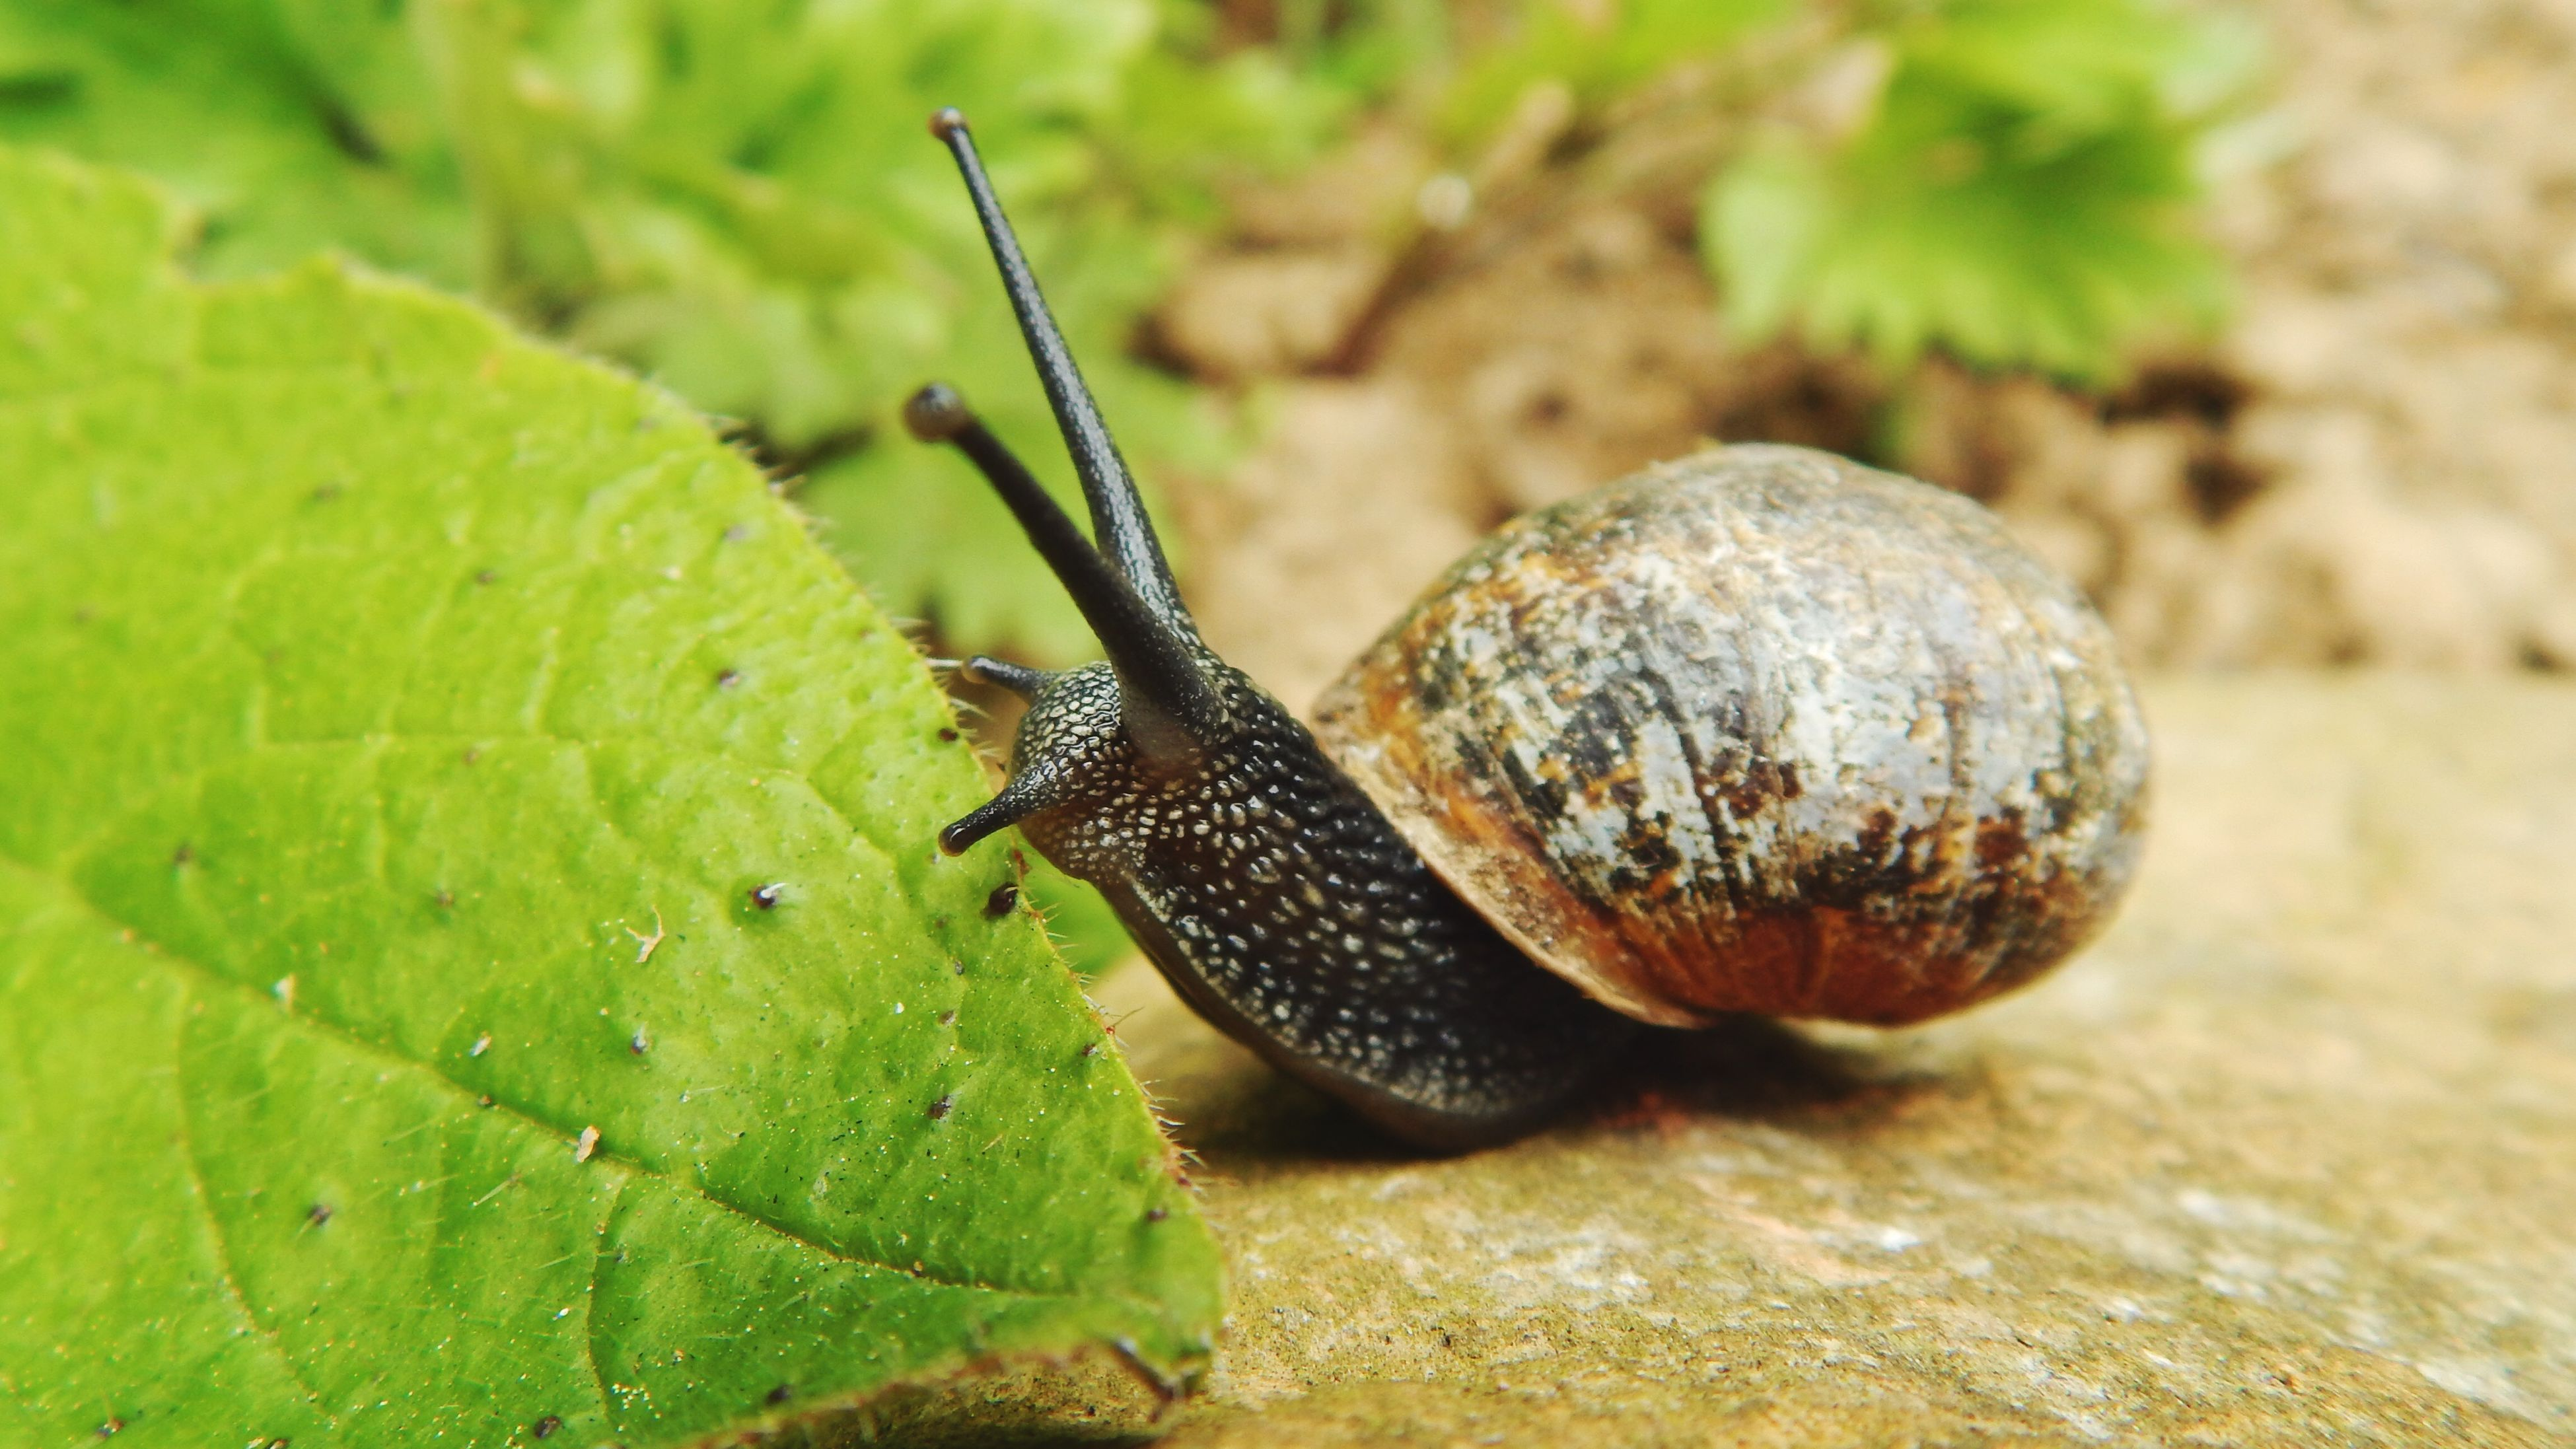 animal themes, wildlife, close-up, focus on foreground, nature, green color, leaf, animal antenna, selective focus, plant, snail, day, outdoors, beauty in nature, no people, animal, growth, natural pattern, green, black color